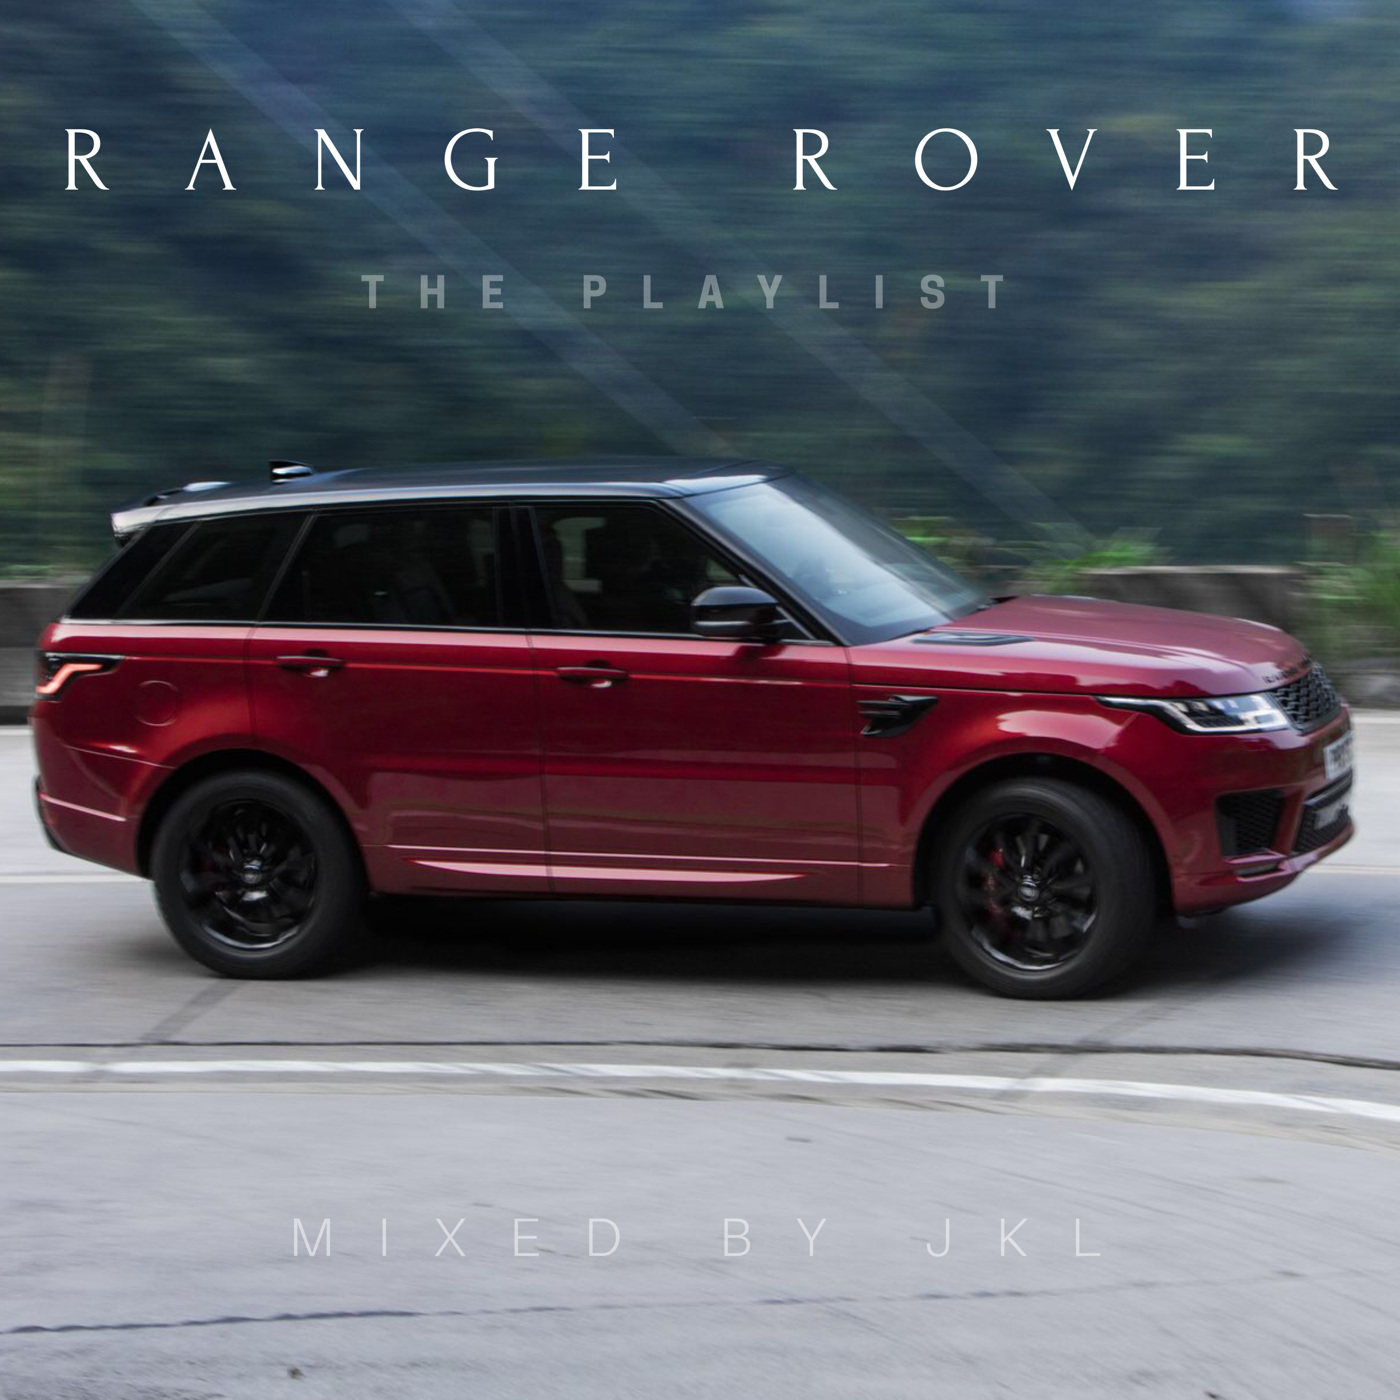 Range Rover: The Playlist